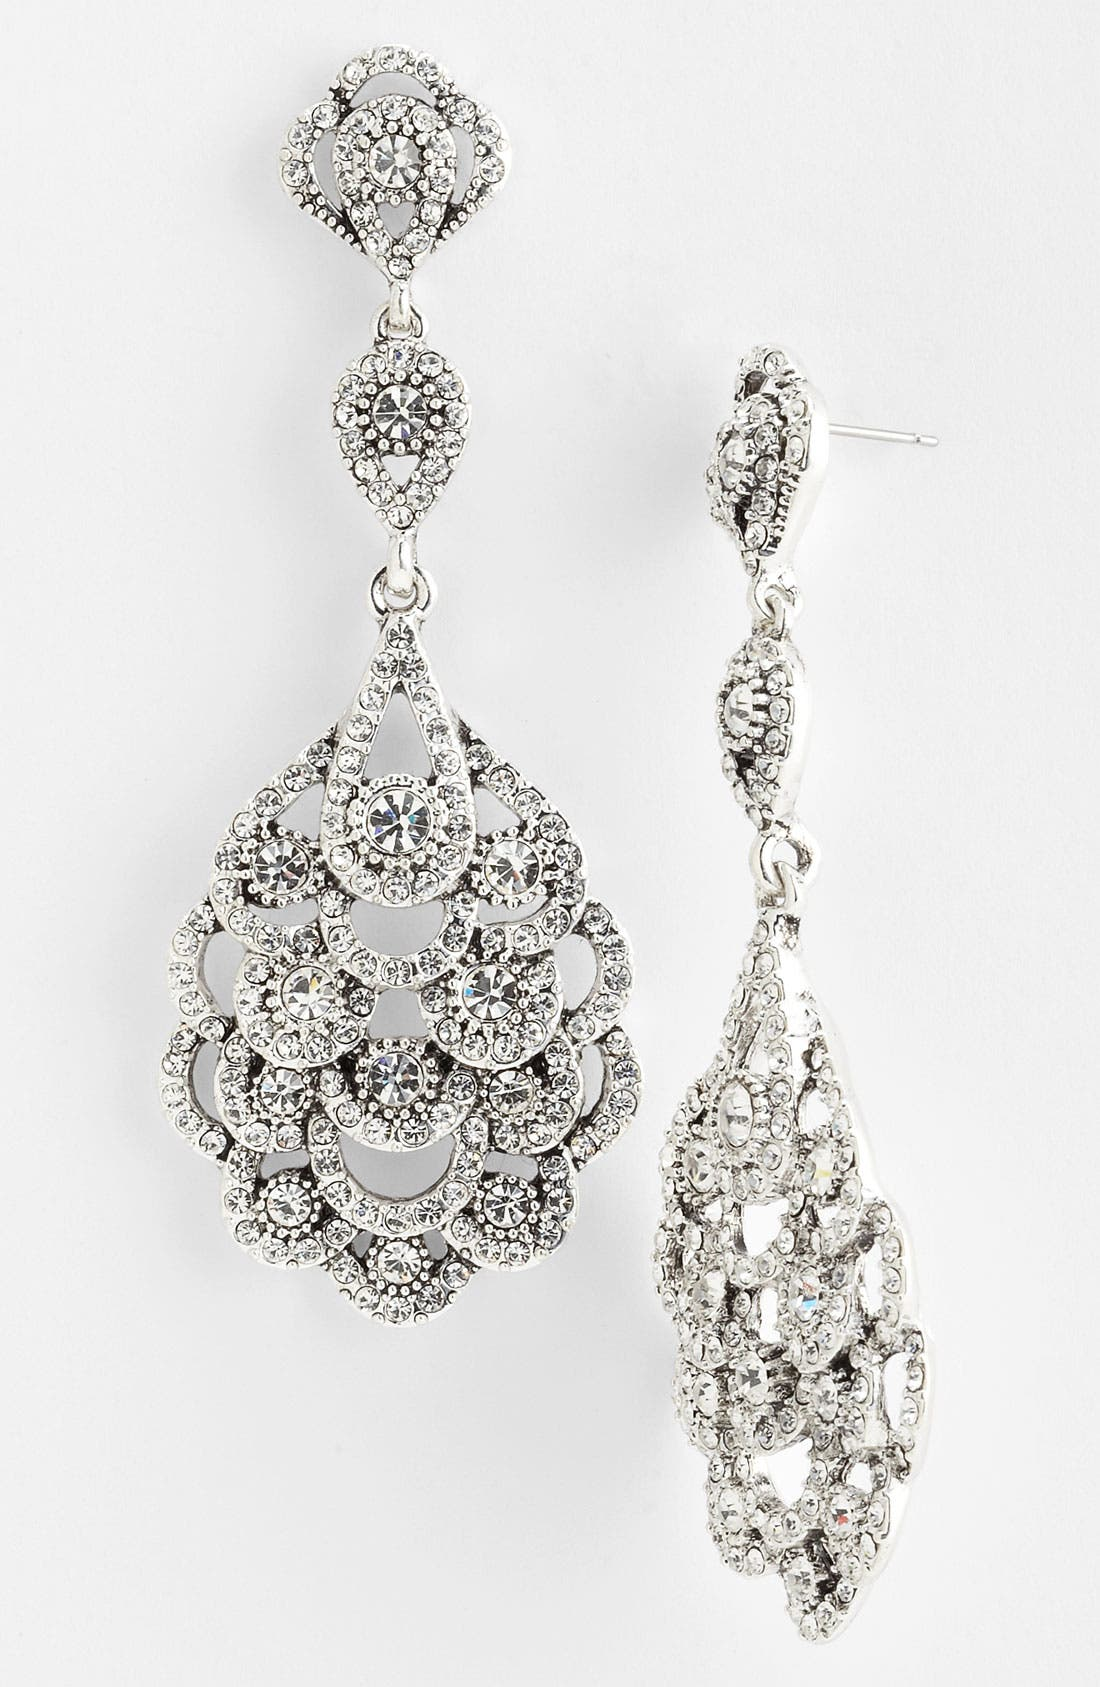 'Eiffel' Statement Drop Earrings,                             Main thumbnail 1, color,                             ANTIQUE SILVER/ CLEAR CRYSTAL